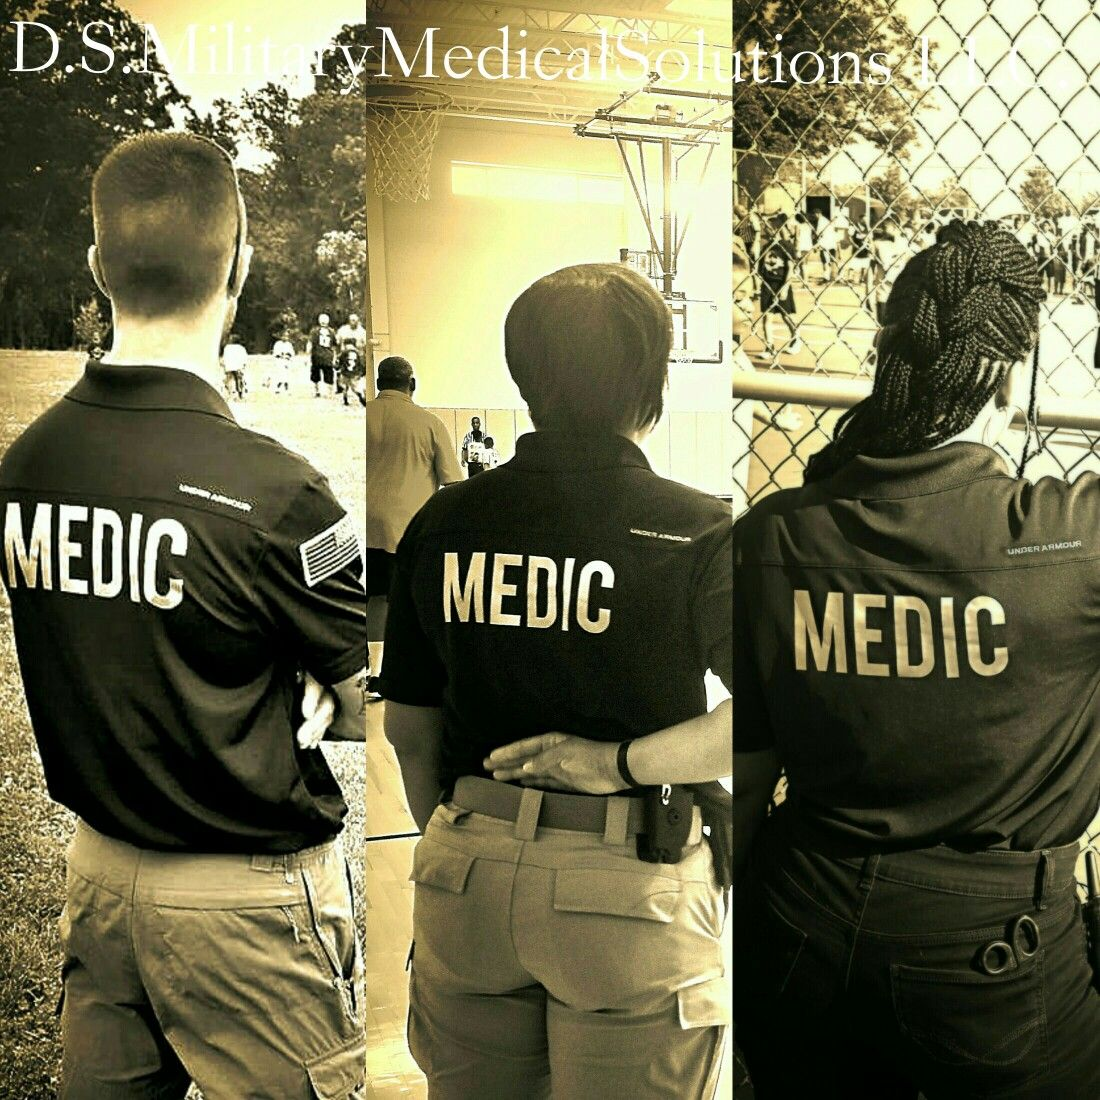 Ds militarymedicalsolutions llc sports medicine division nremt ds militarymedicalsolutions llc sports medicine division nremt tccc tecc ems tactical medicarmy 1betcityfo Images